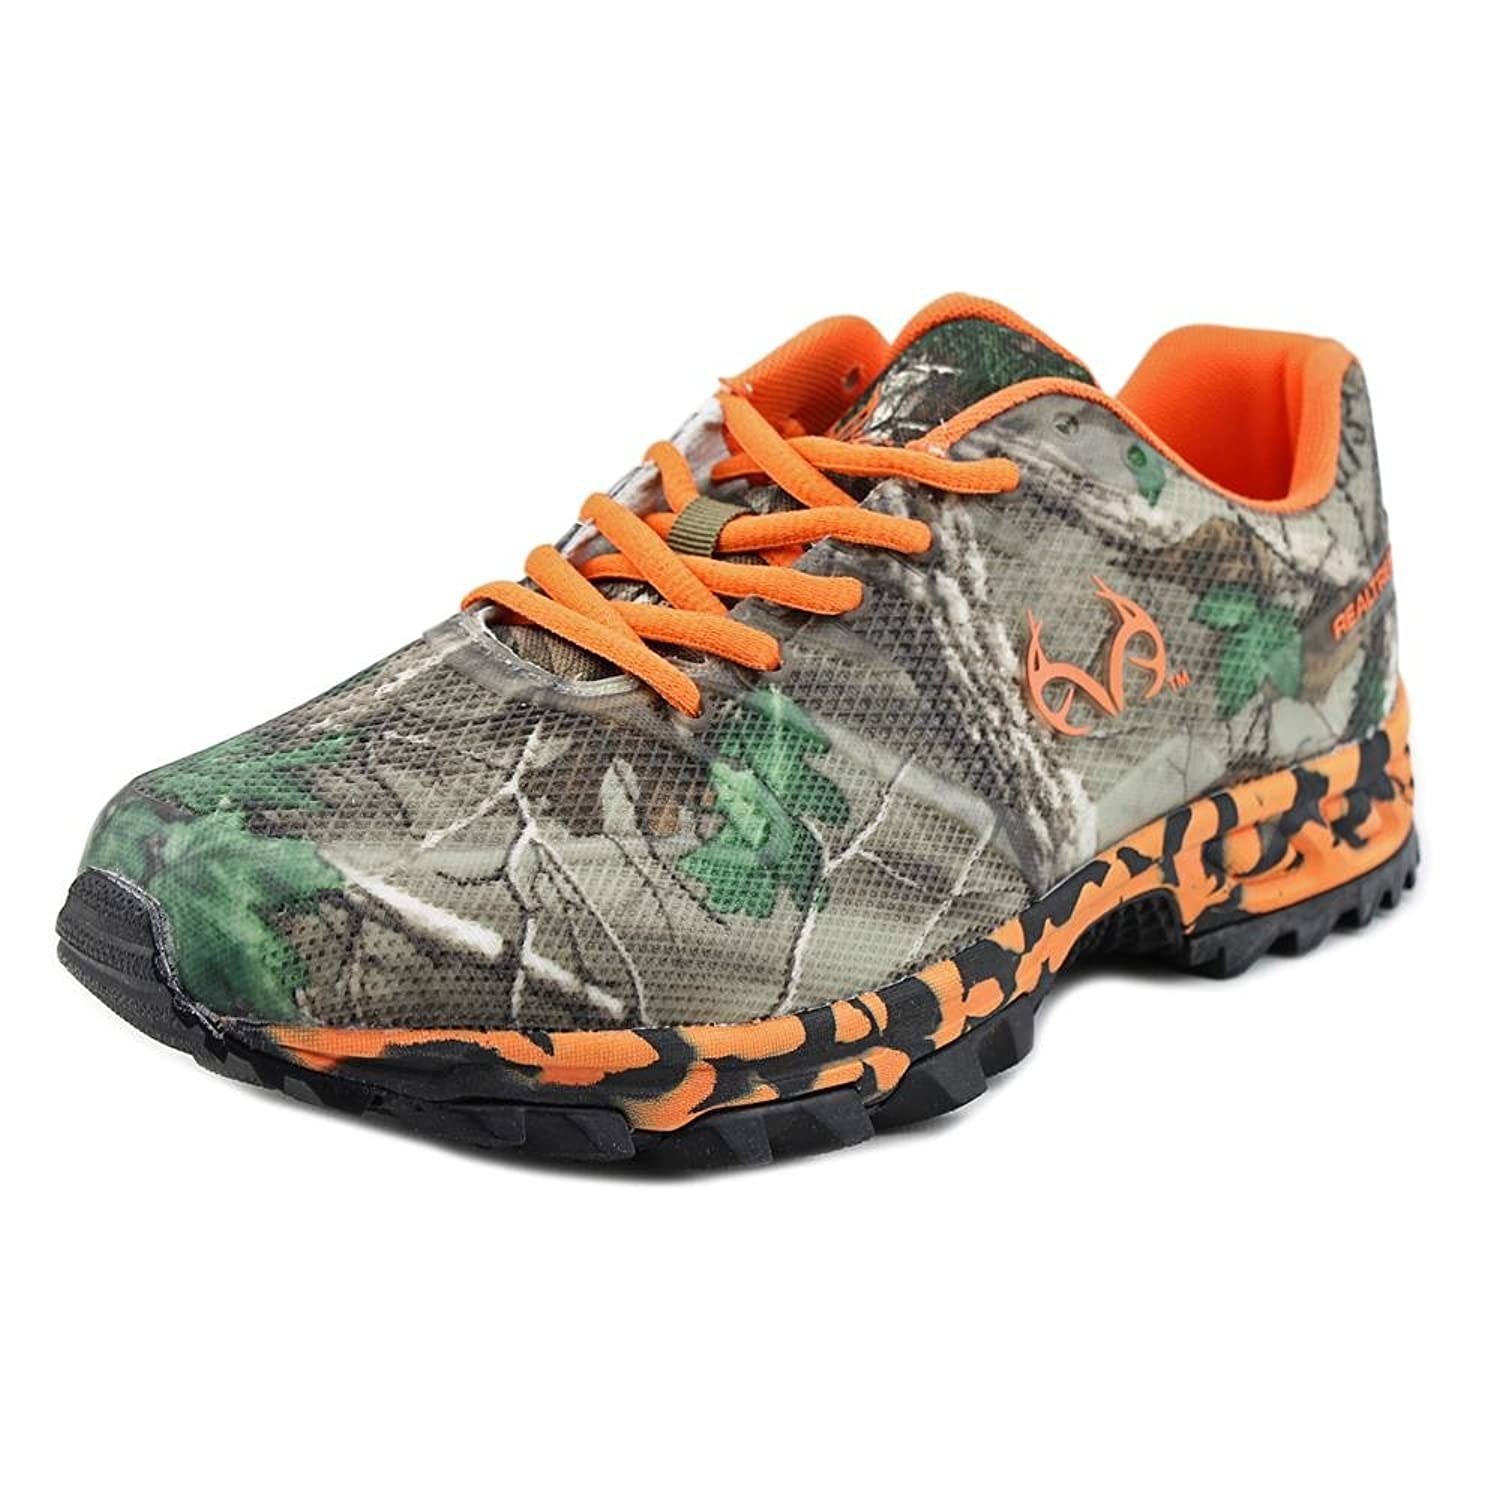 Realtree Outfitters Men's Cobra Hiking Shoe